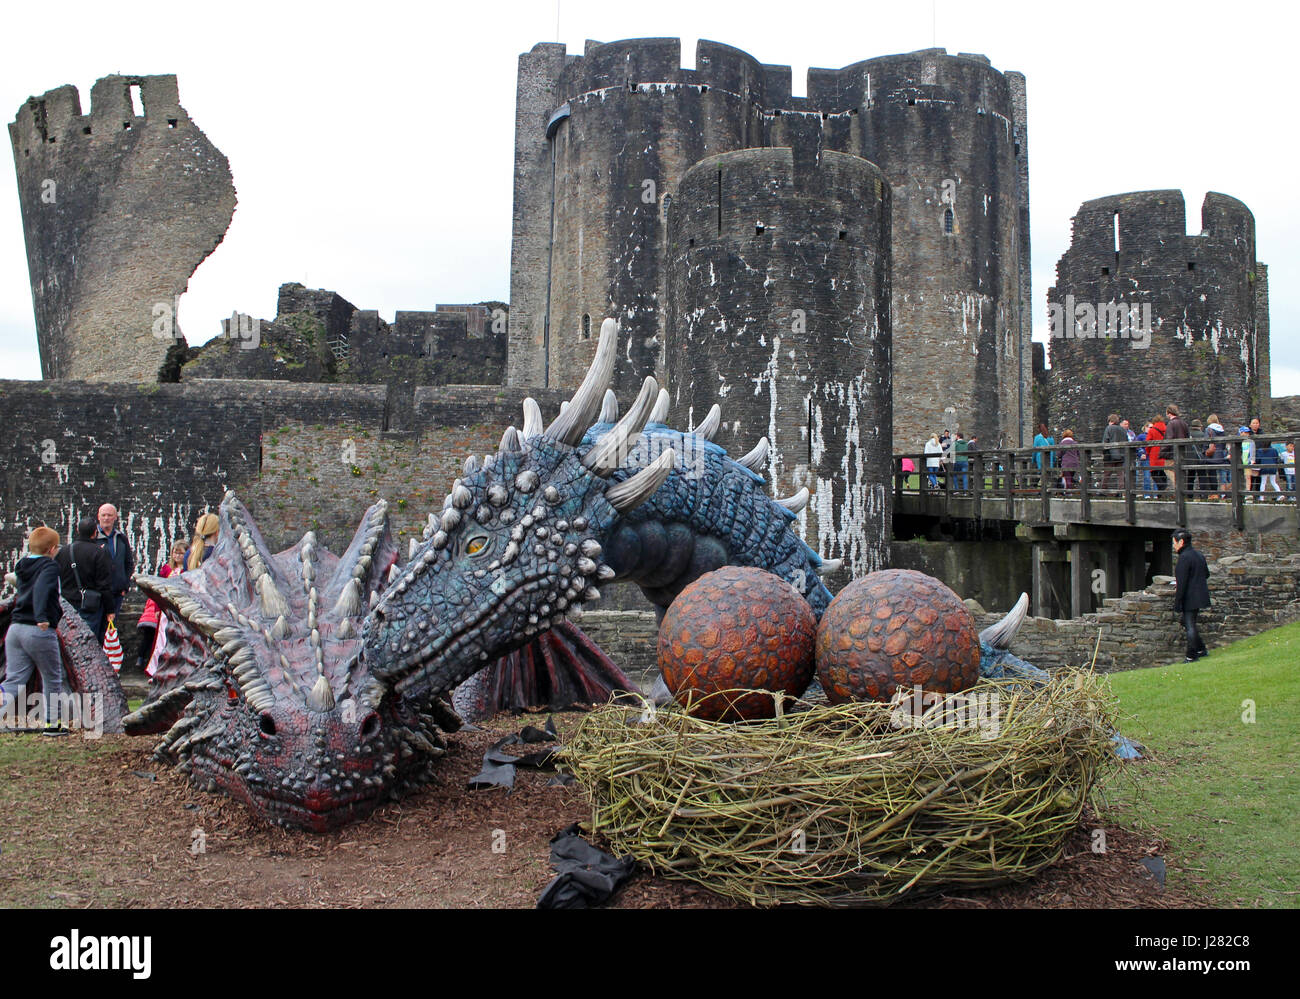 The Dragons Dewi And Dwynwen At Caerphilly Castle